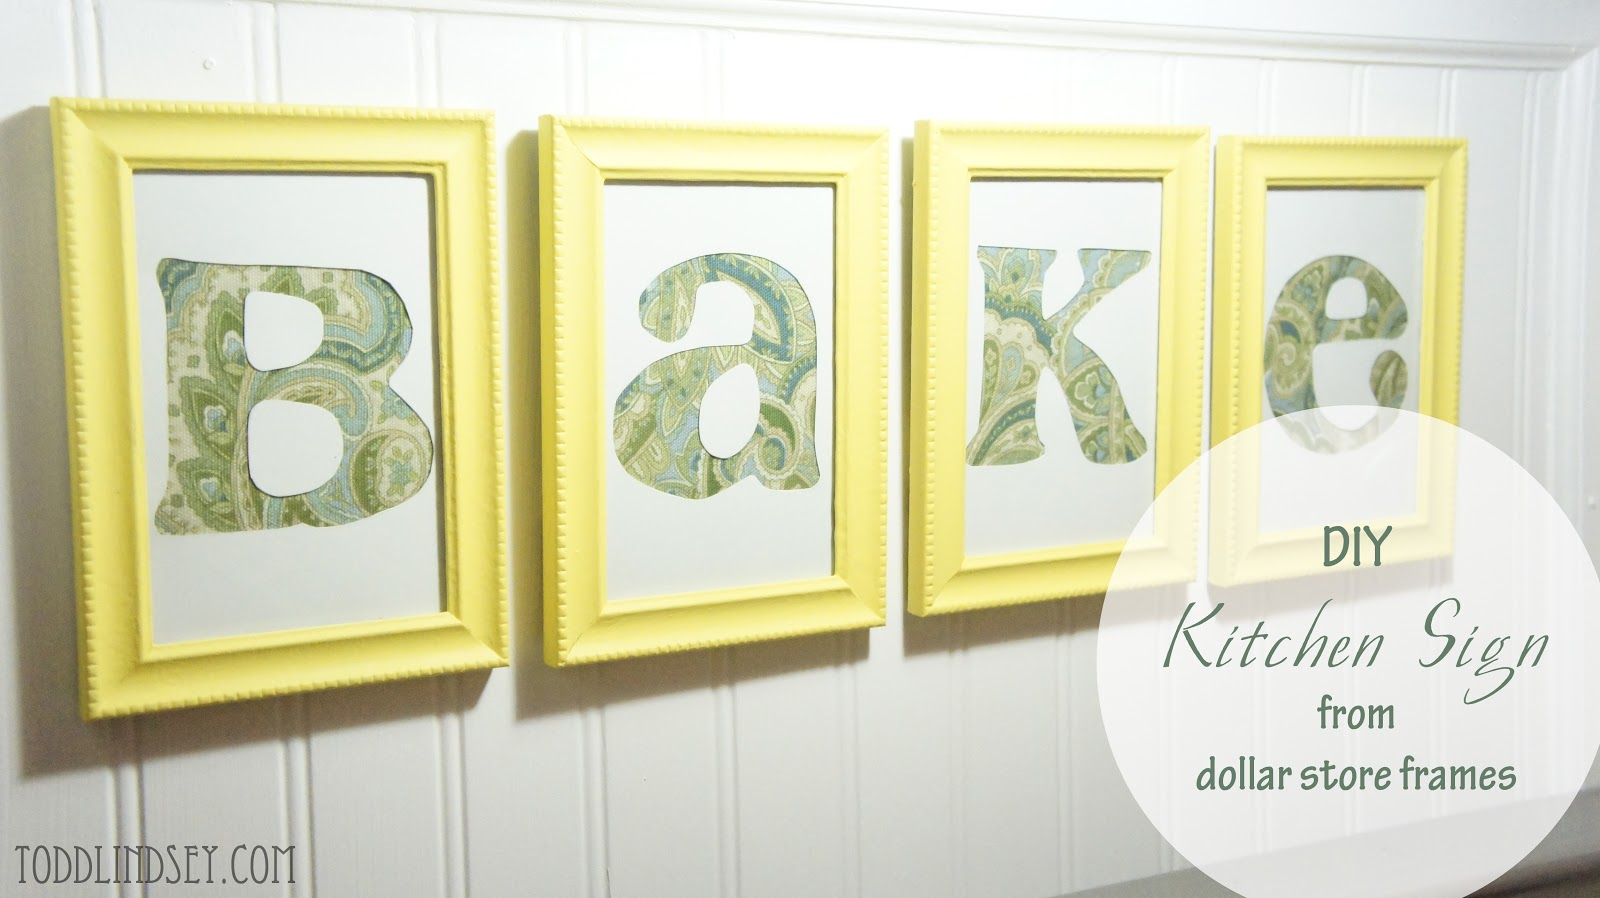 Domer Home: DIY Kitchen Sign from Dollar Store Frames